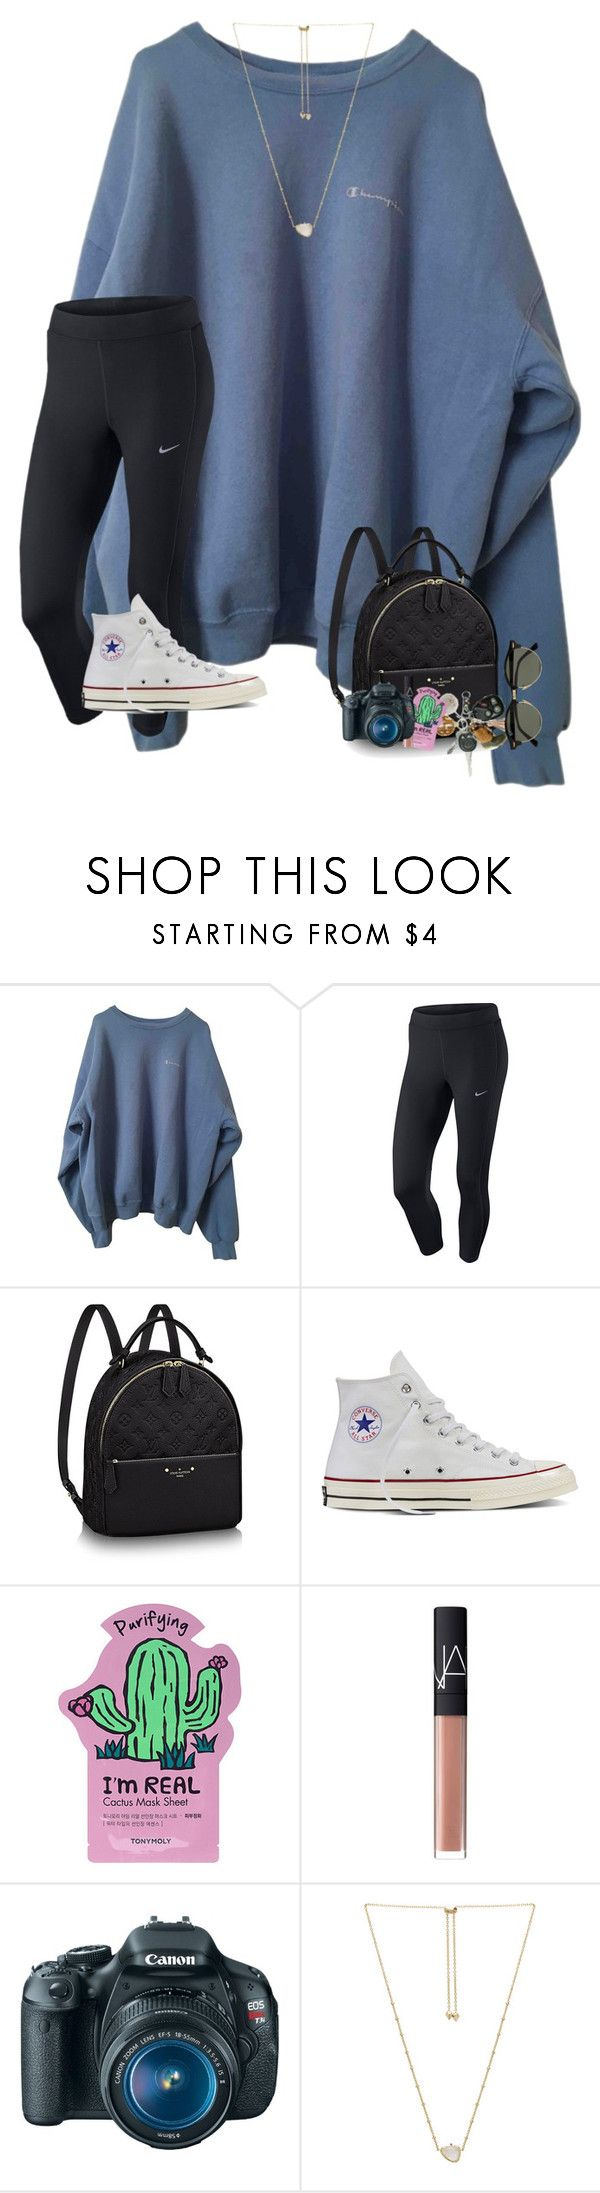 """~life update~rtd~"" by taylortinsley ❤ liked on Polyvore featuring NIKE, Converse, ULTA, NARS Cosmetics, Canon, Kendra Scott and Ray-Ban"